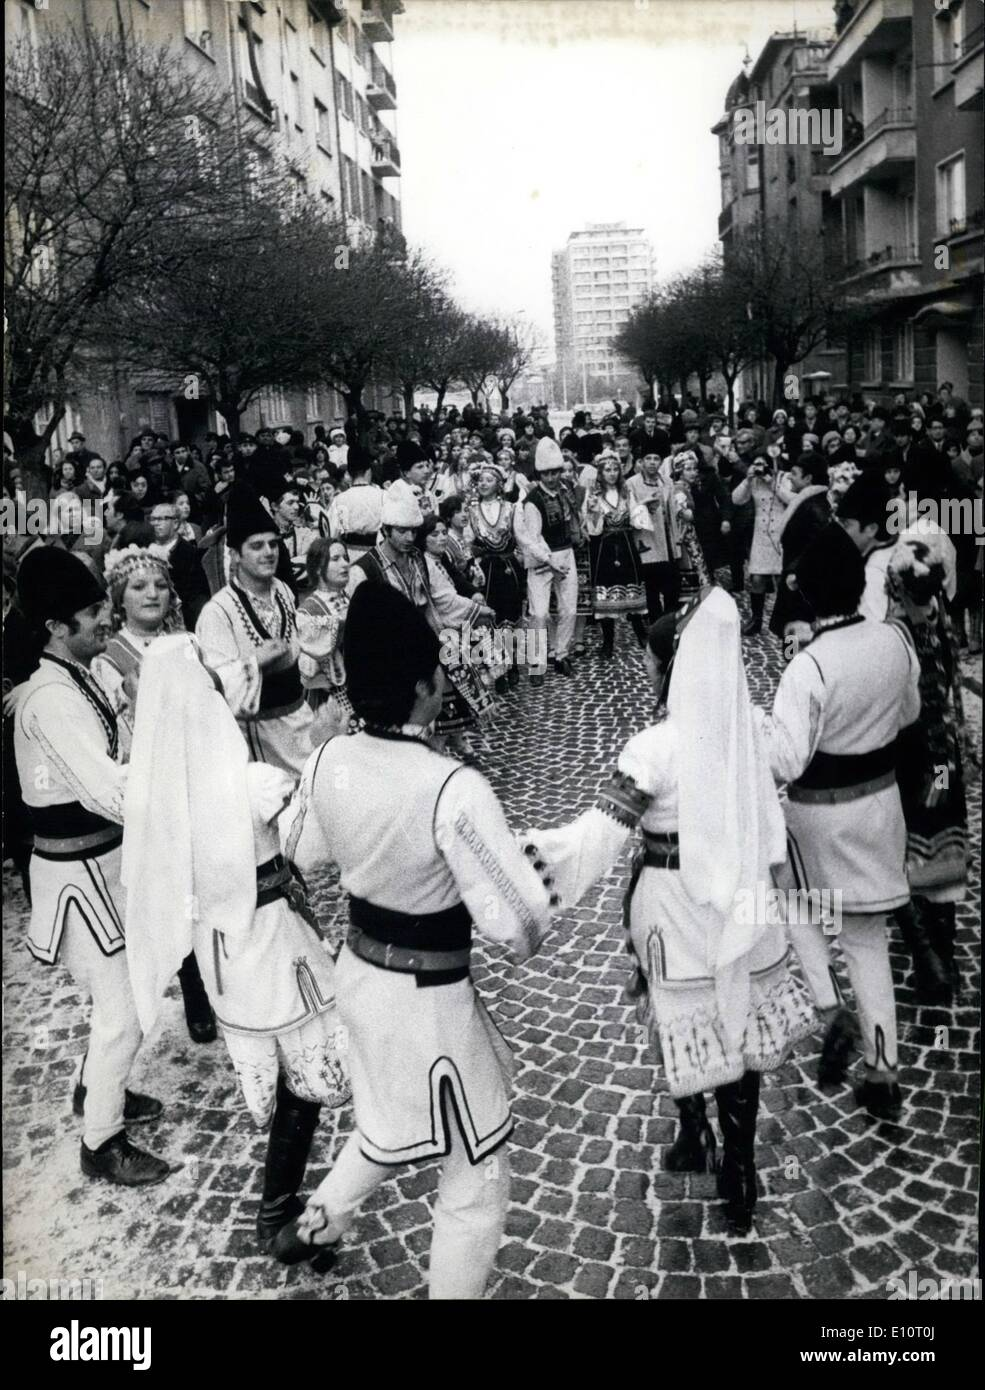 Jan. 01, 1974 - ELECTION FOR PEOPLE'S COUNCILS IN BULGARIA: The elections for People's Councils in Bulgaria passed in an atmosphere of genuine enthusiasm. Photo shows folk dances outside the polling station in ''Dimitar Polyanov'' Street in Sofia. - Stock Image